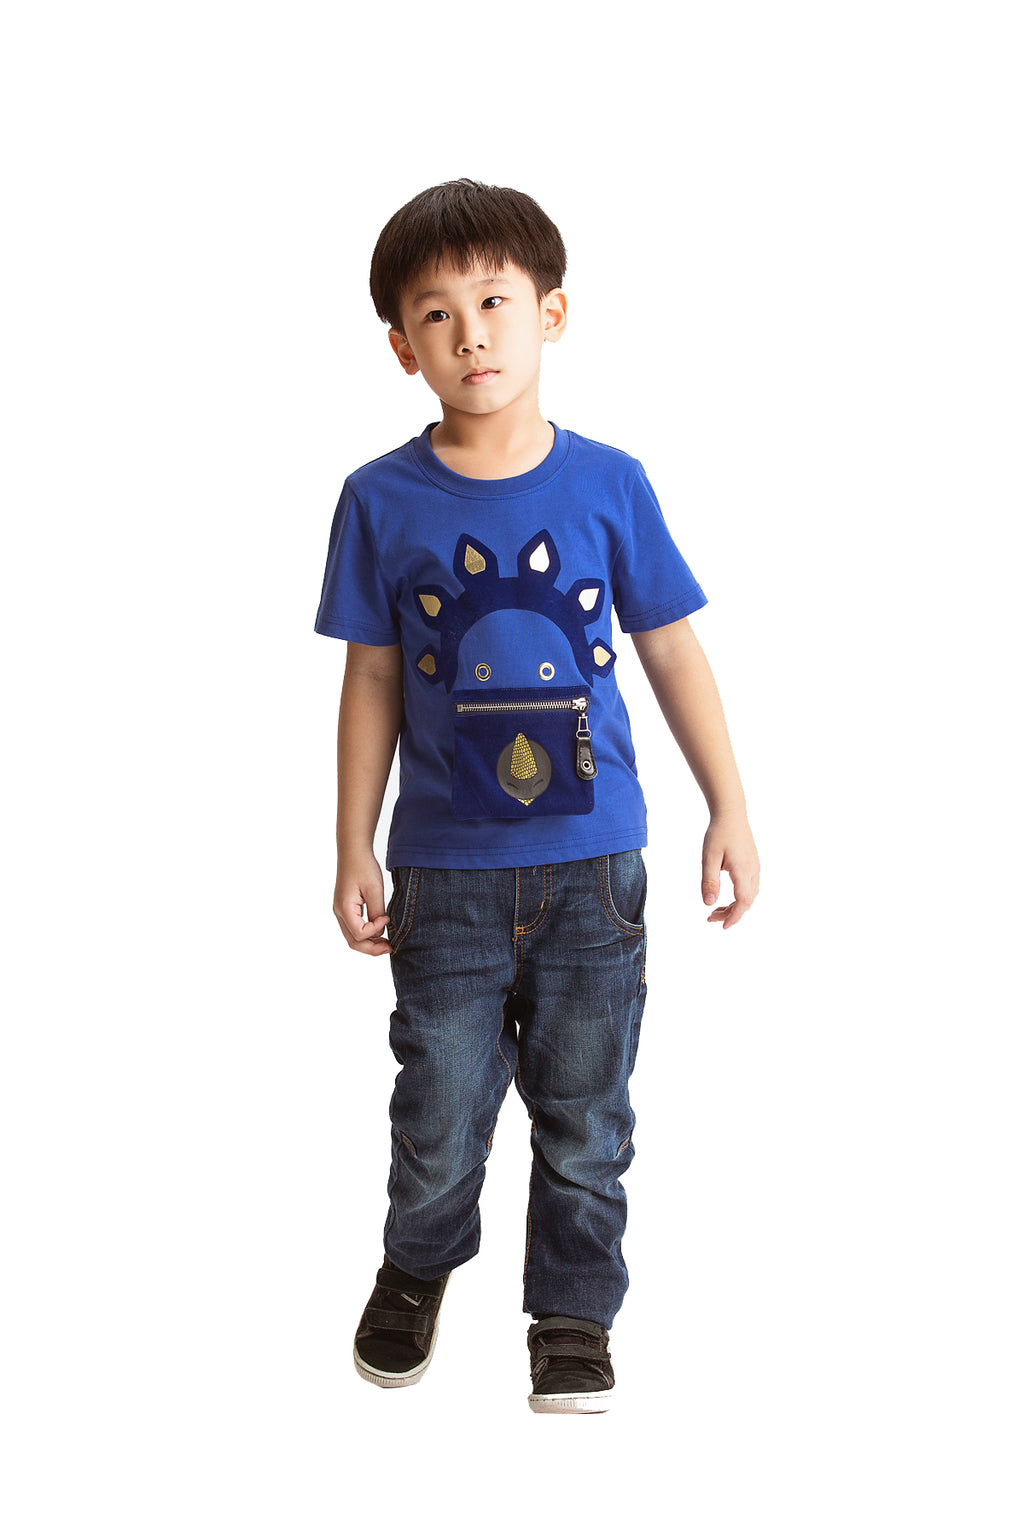 Little Mons T-Shirt for Kids - Blue